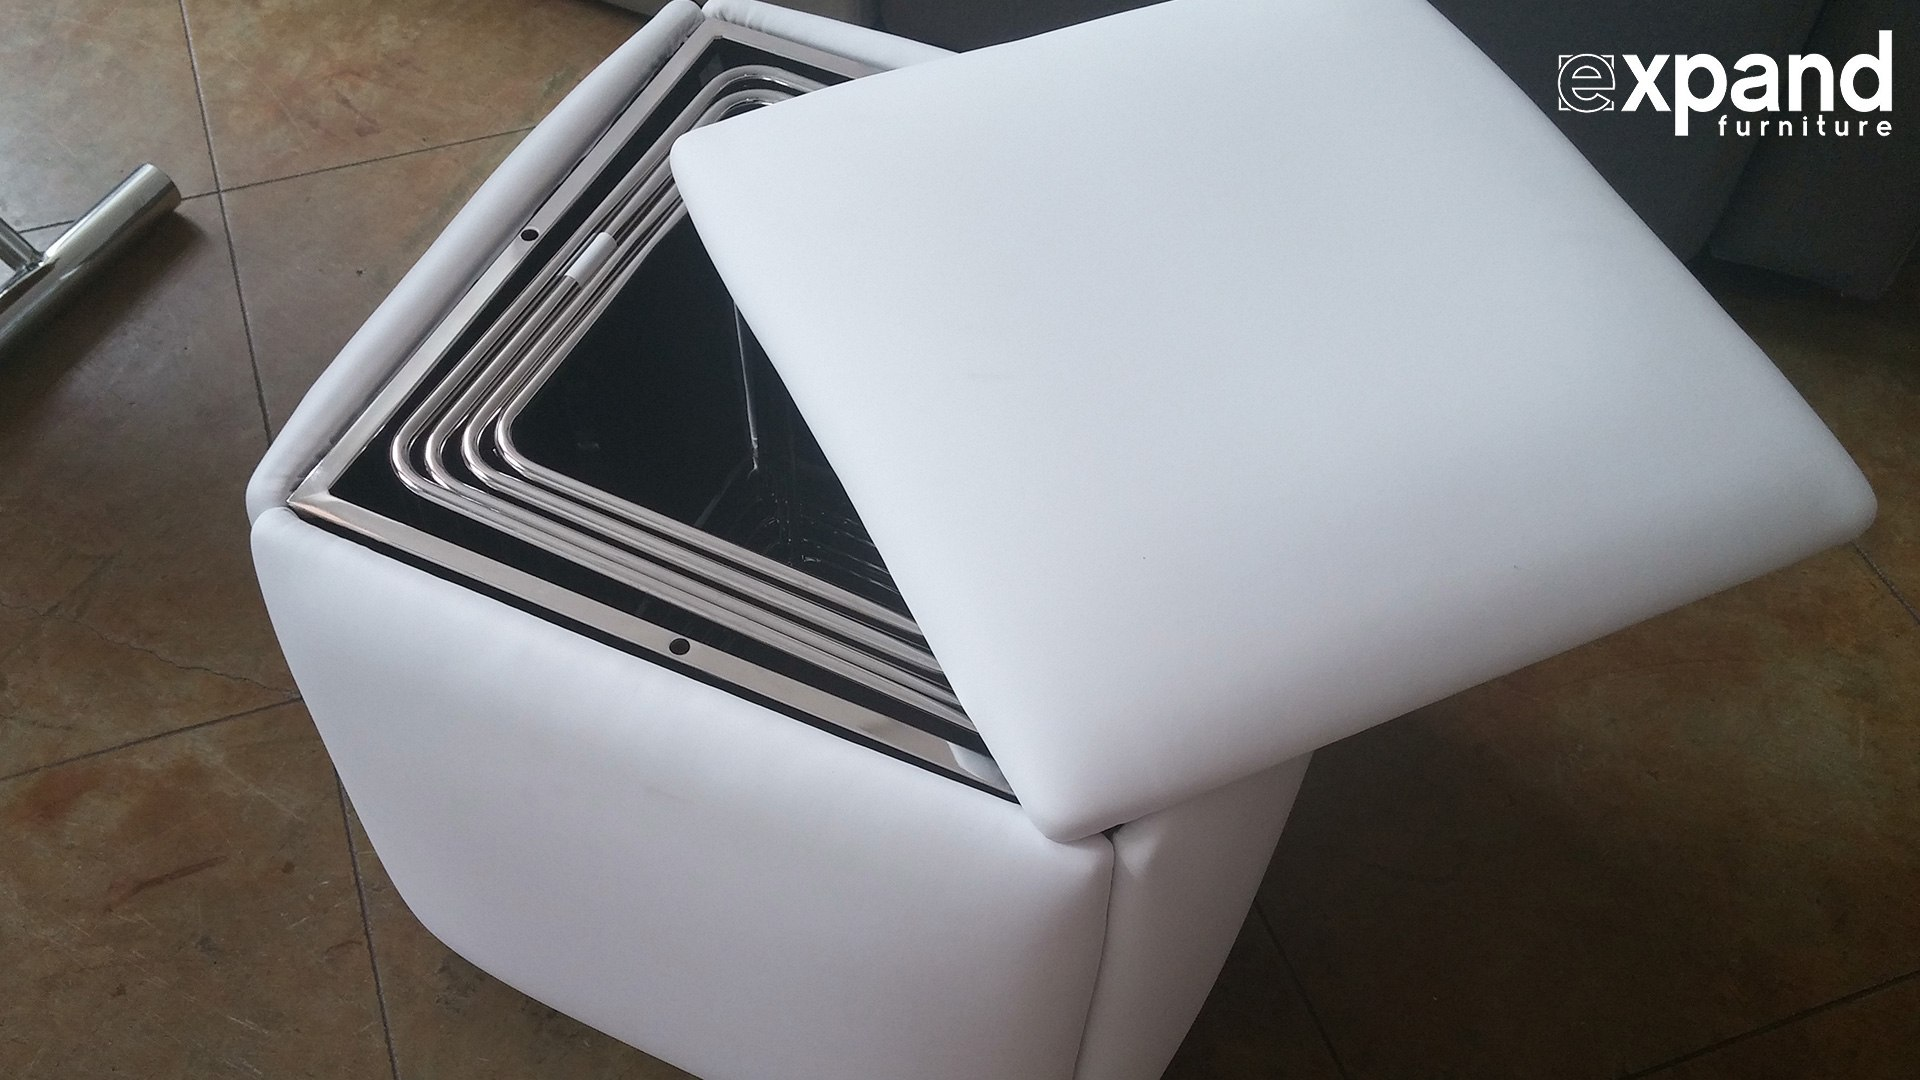 Cube 5 in 1 Ottoman Seat Space Saver (Expand Furniture)